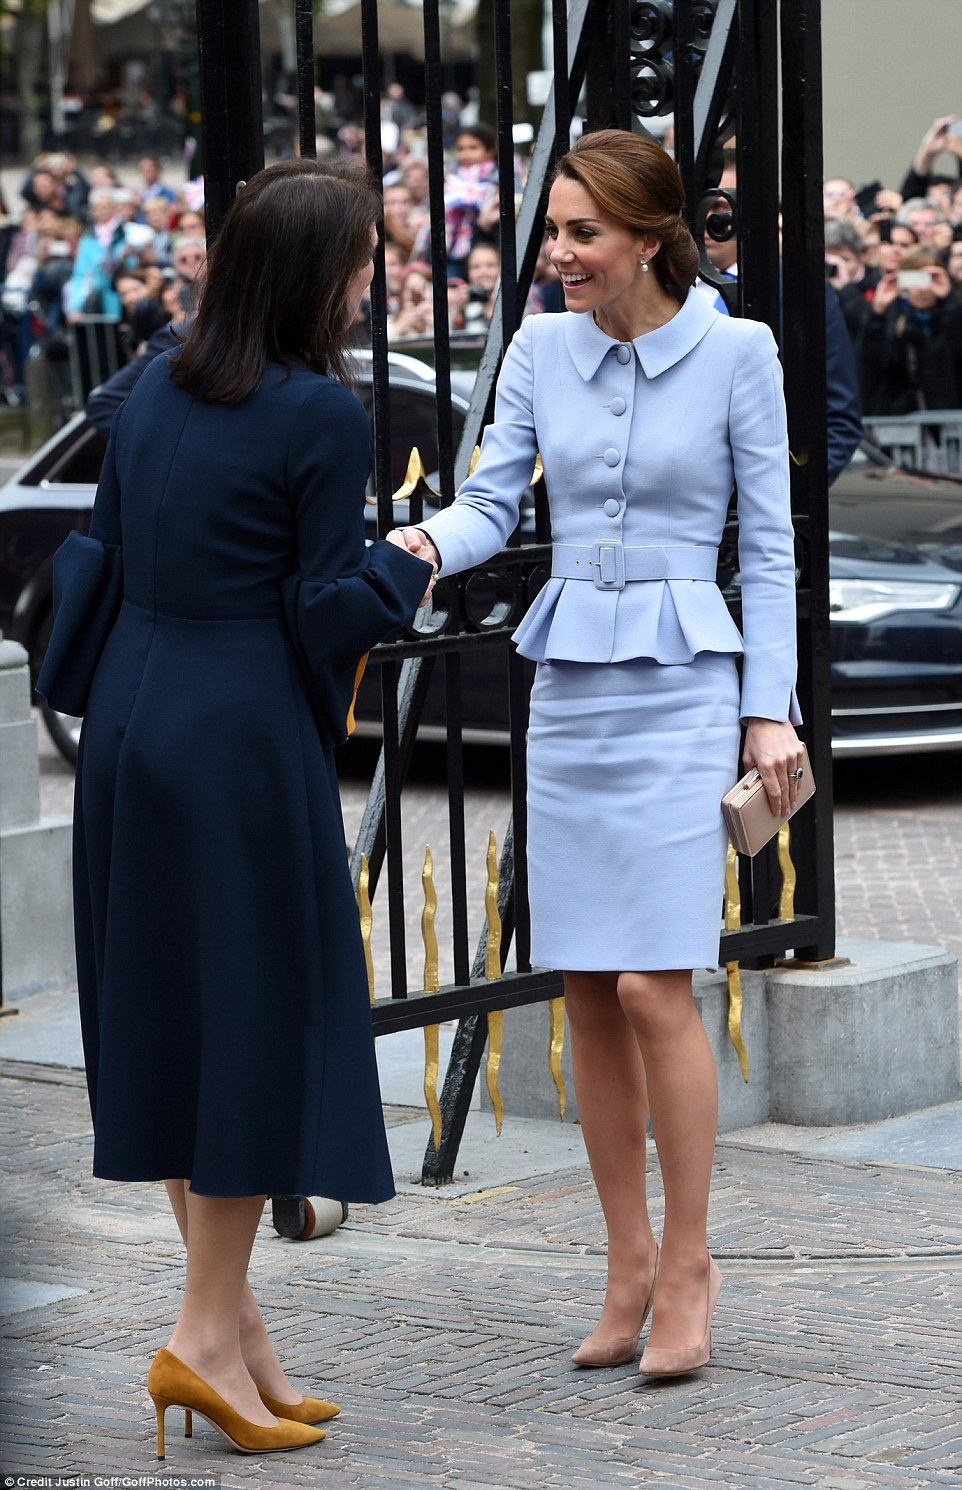 Kate is greeted by the director of the Mauritshuis gallery Emilie Gordenker in The Hague